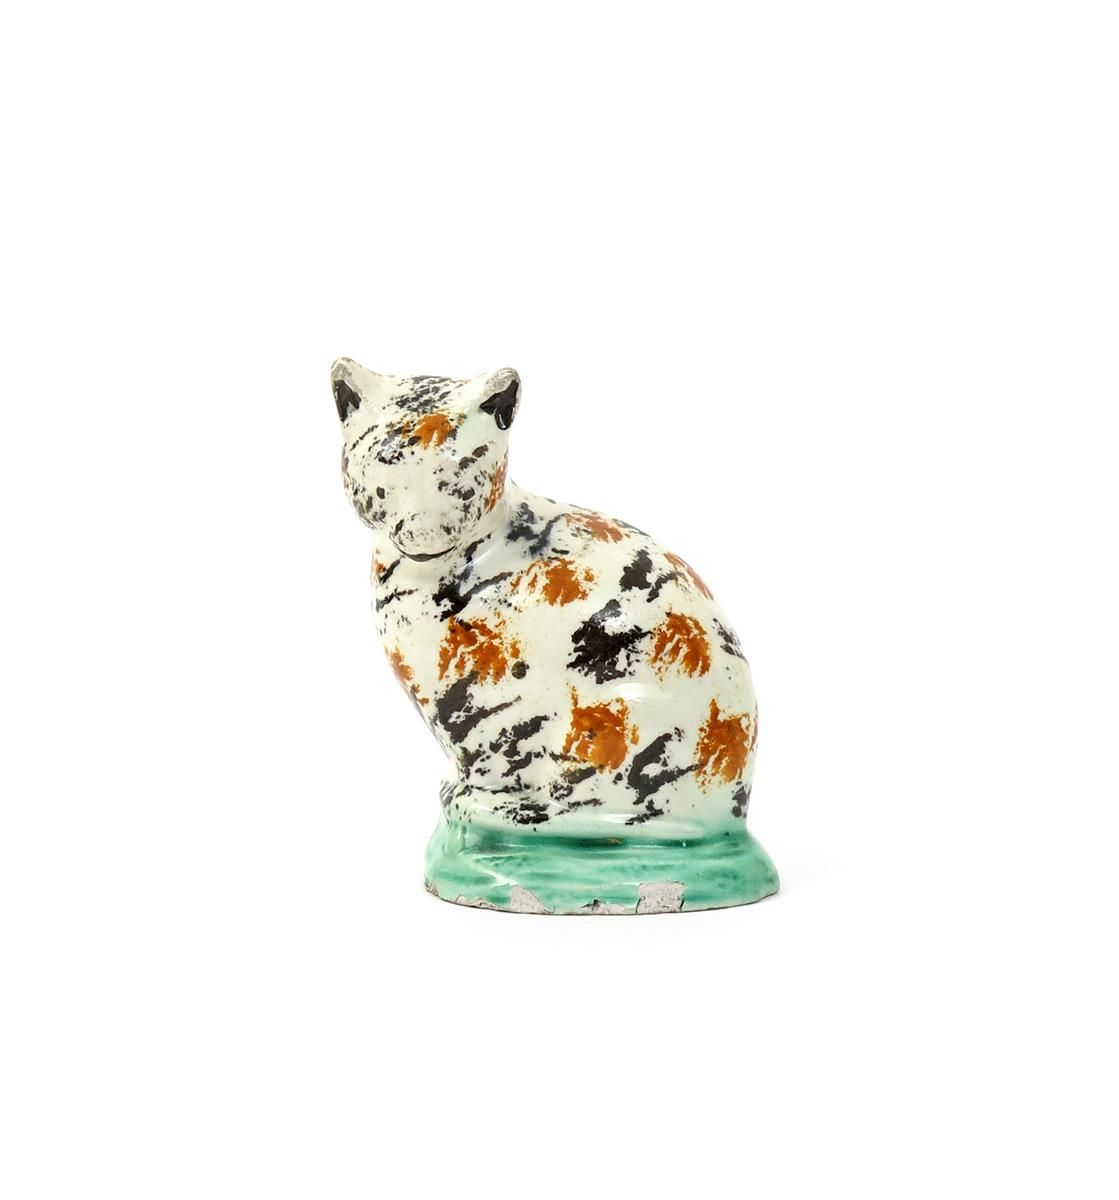 Lot 99 - A Staffordshire creamware model of a cat c 1800